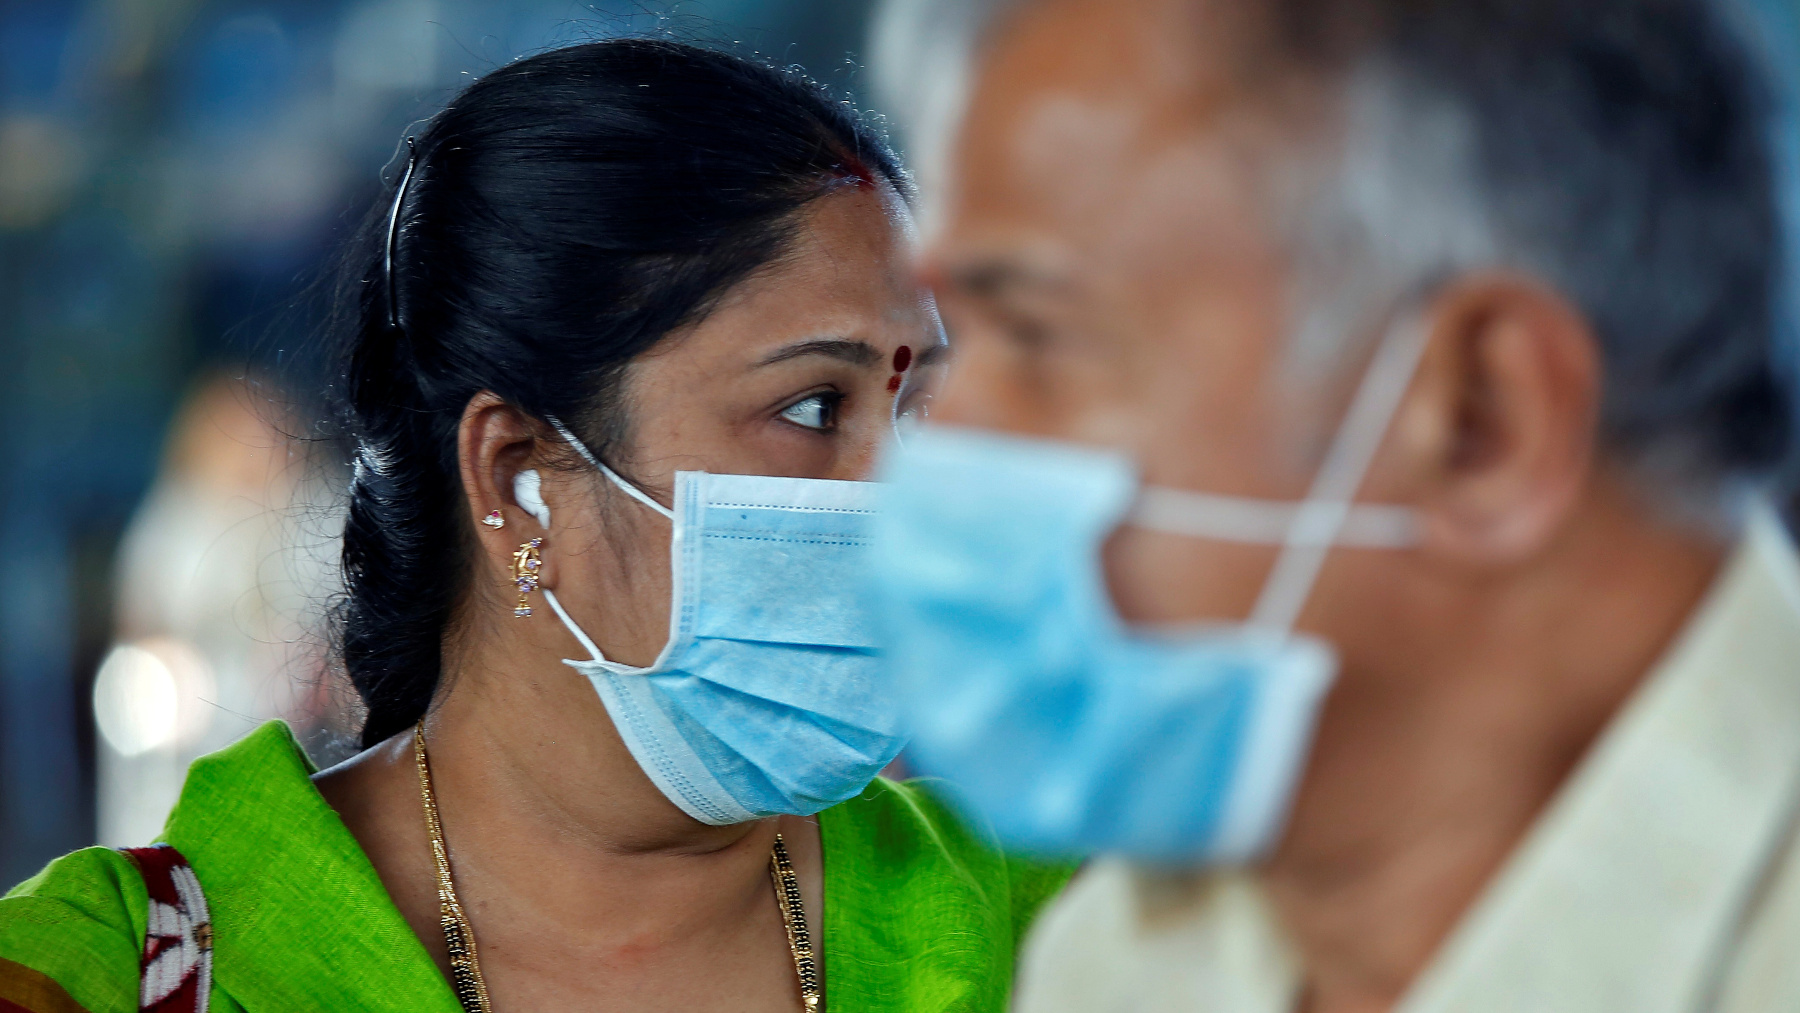 India bans export of protective masks and clothing - Nikkei Asia